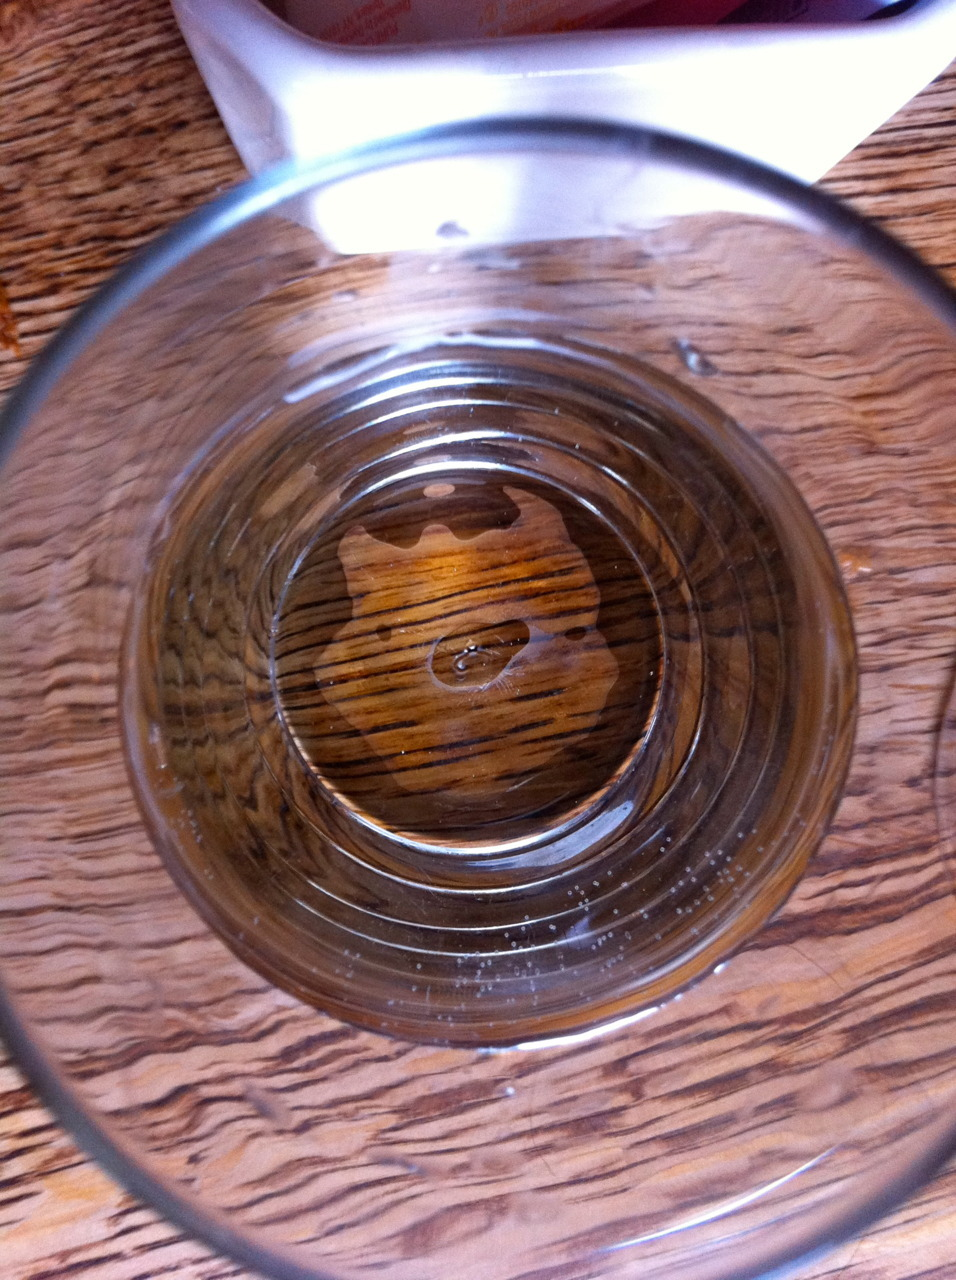 WATER UNDER DRINKING GLASS/ PIG Even my drinking glass agrees with Mother.